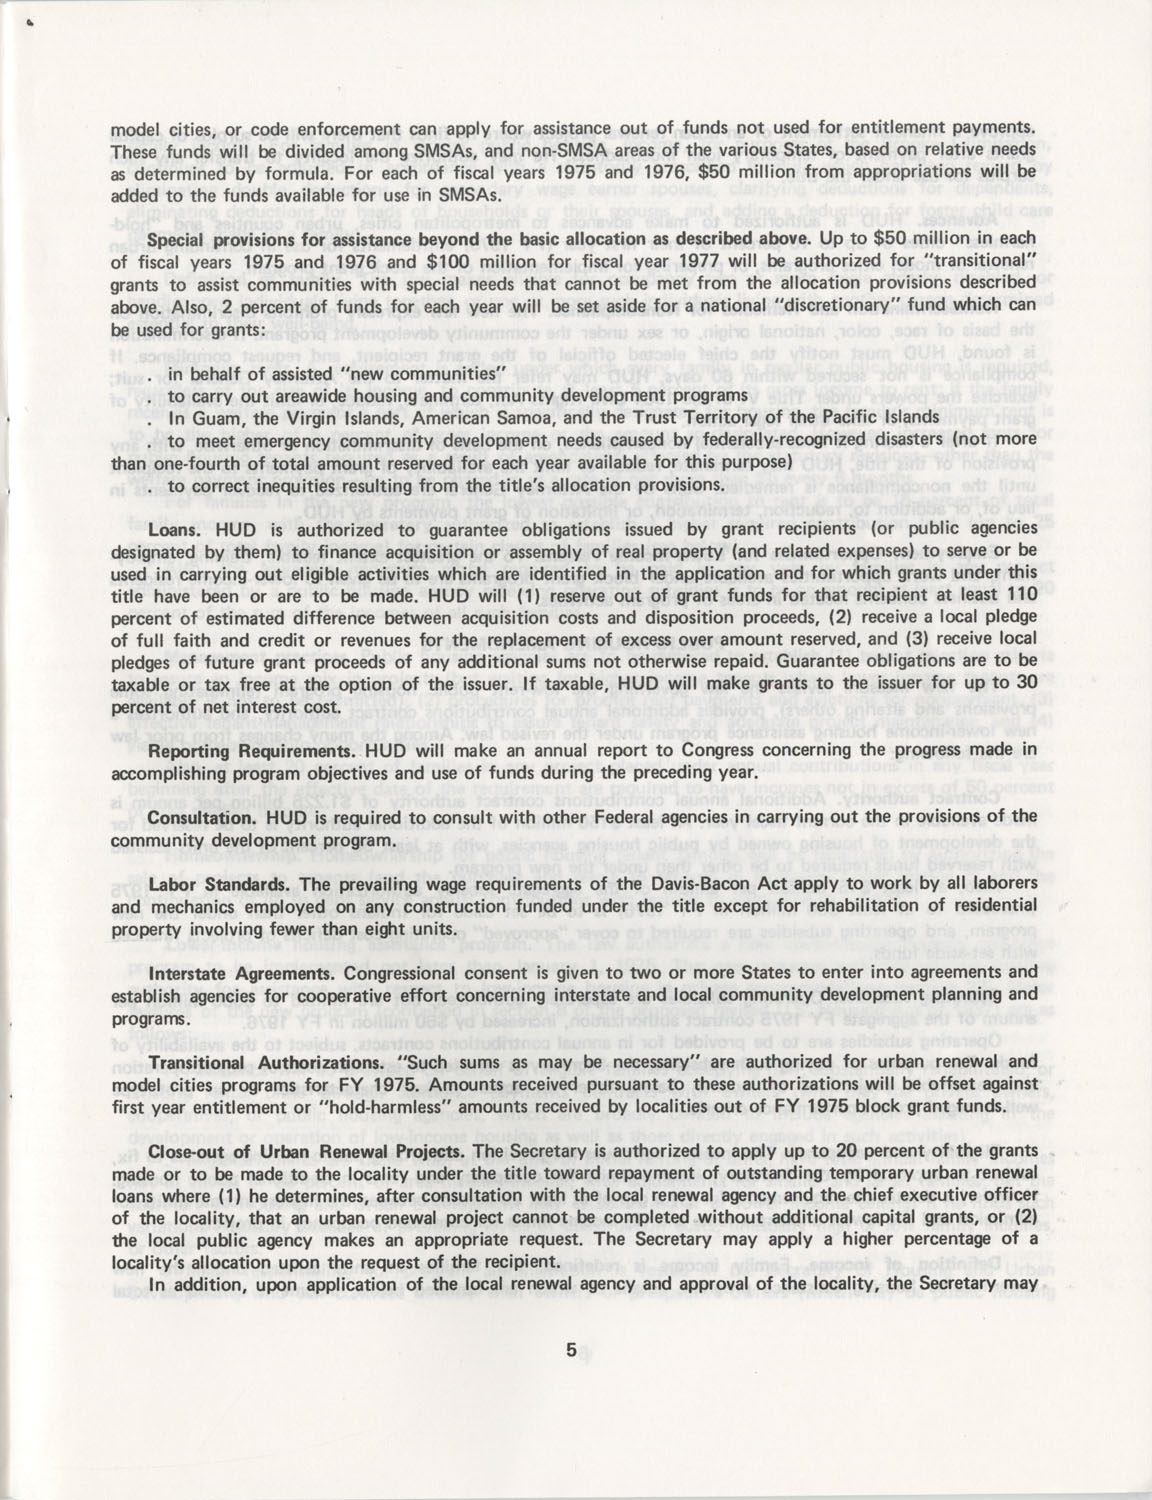 Summary of the Housing and Community Development Act of 1974, Page 5